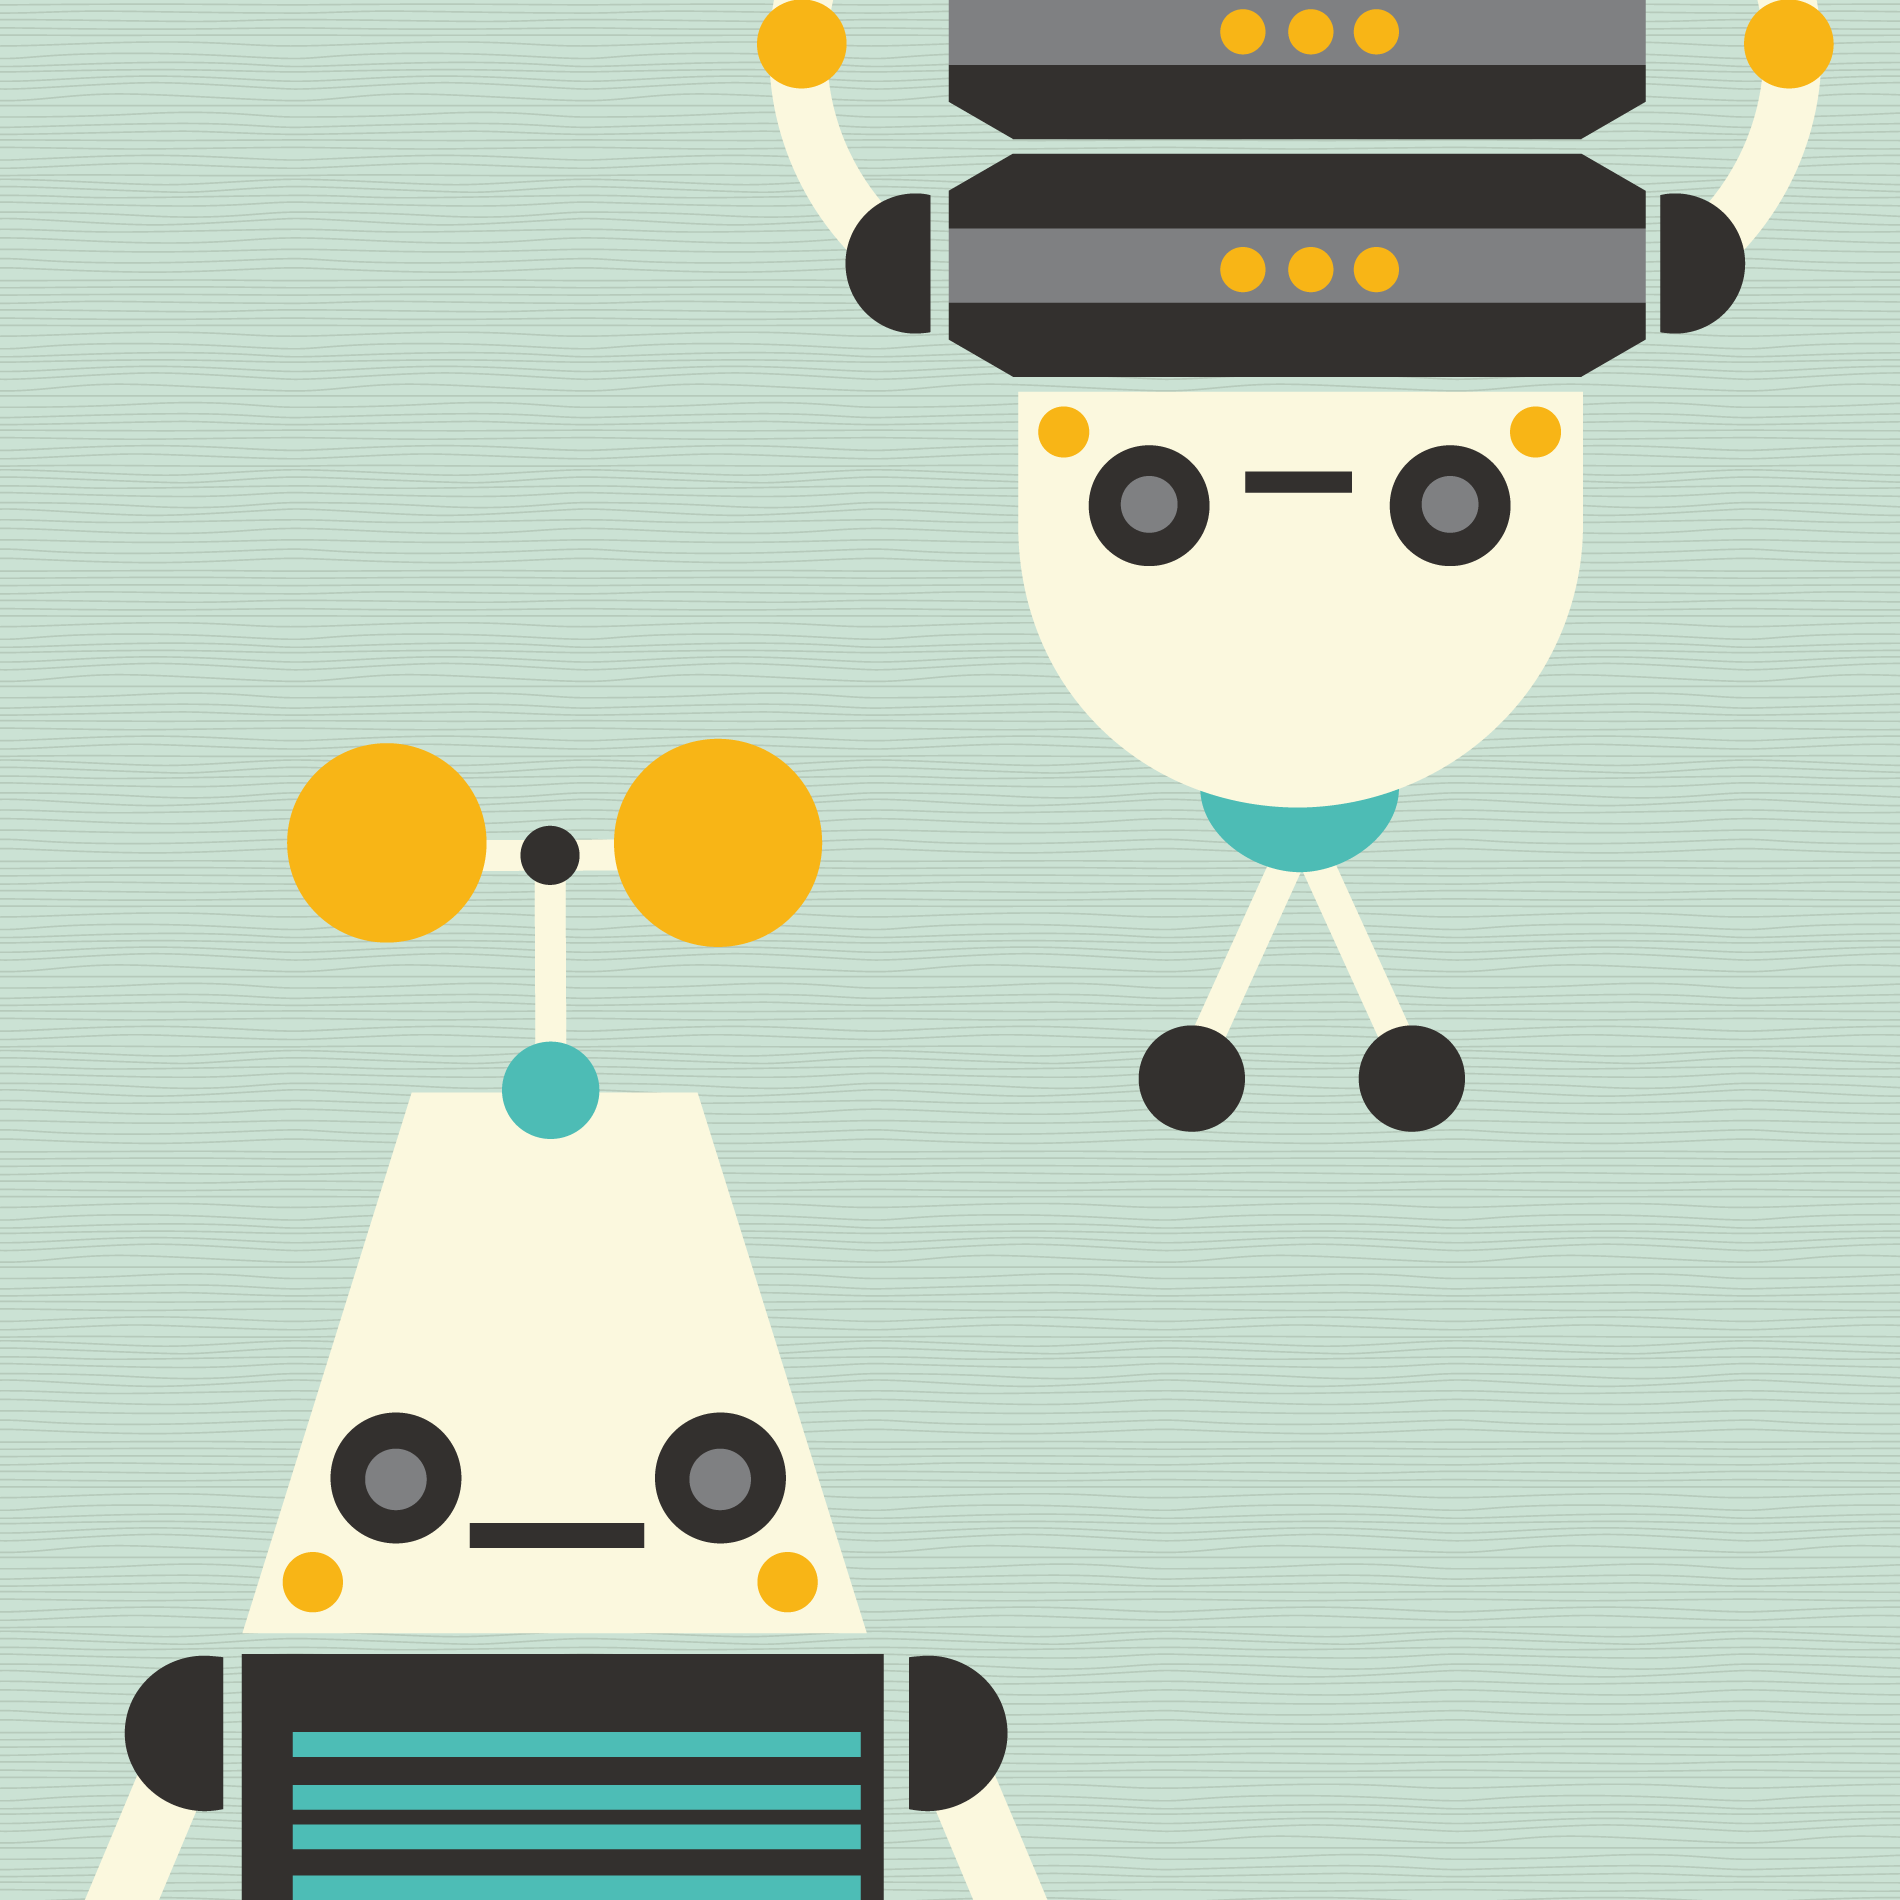 Illustration_apps_games_lumos_robots